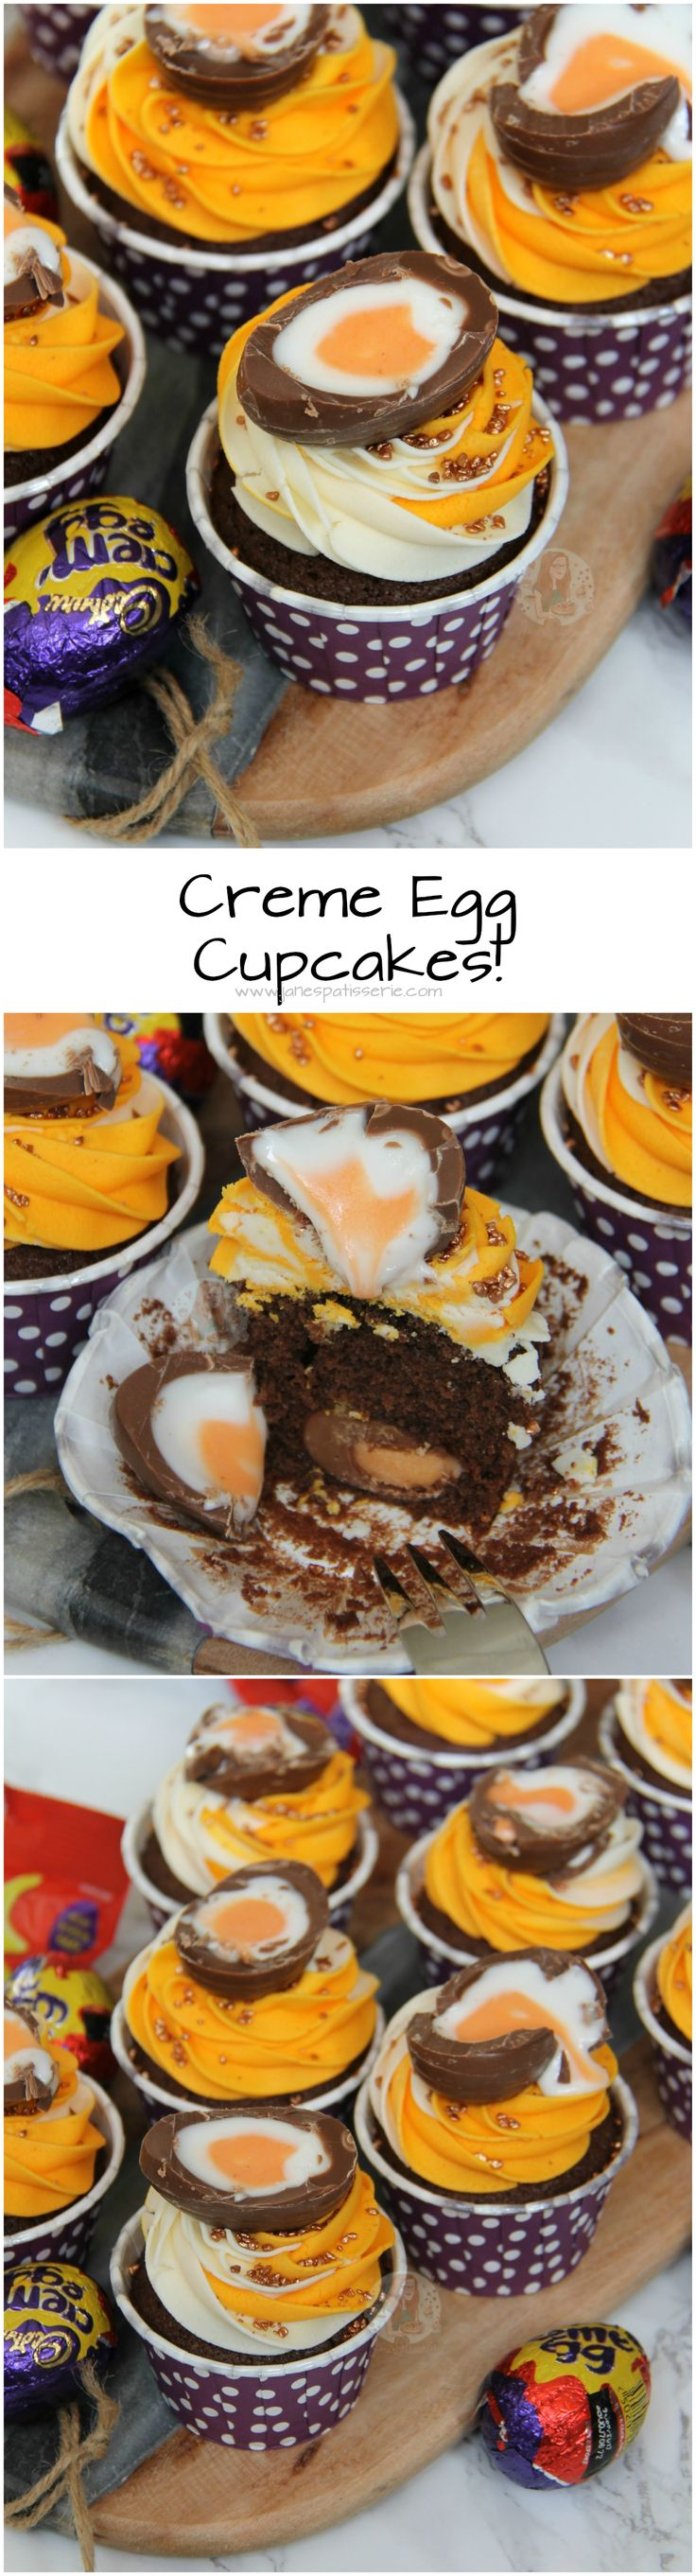 Creme Egg Cupcakes! ❤️ Chocolate Sponge Cupcakes, with a Hidden Creme Egg Centre, Multi-Tone Buttercream Frosting, and Half a Creme Egg on top… Ideal Creme Egg Cupcakes.